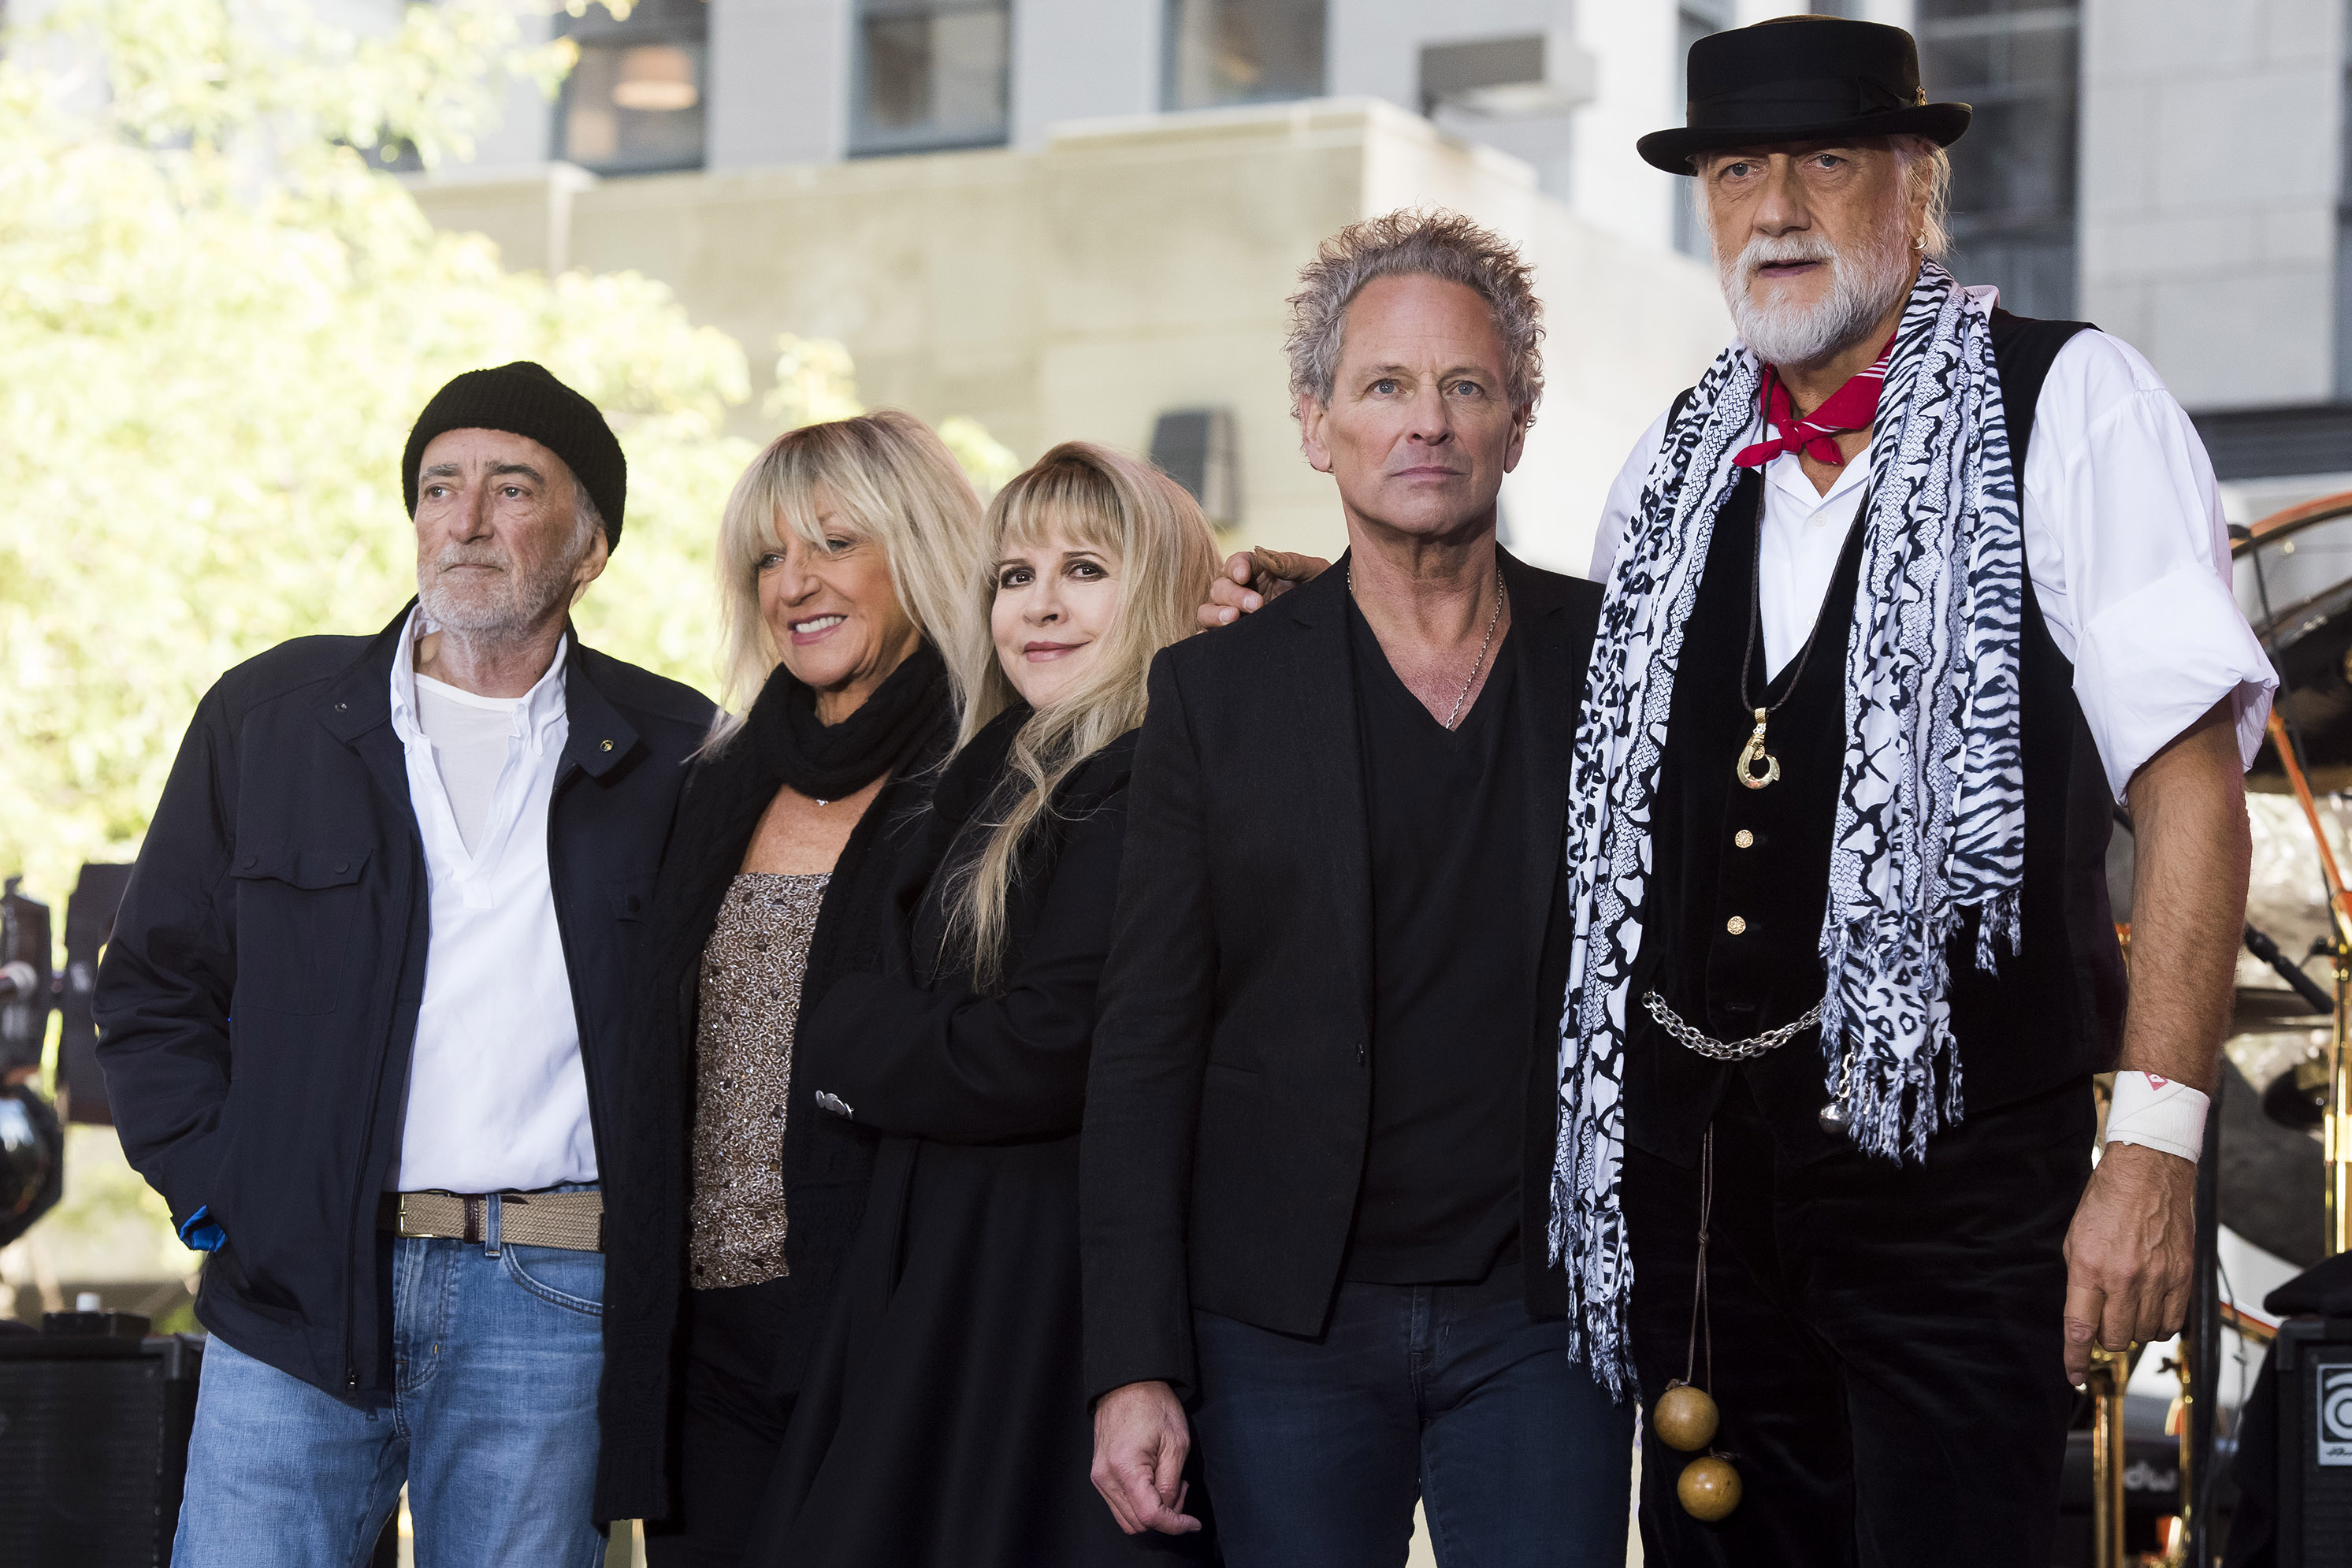 People: Fleetwood Mac show ends early when drummer falls ill